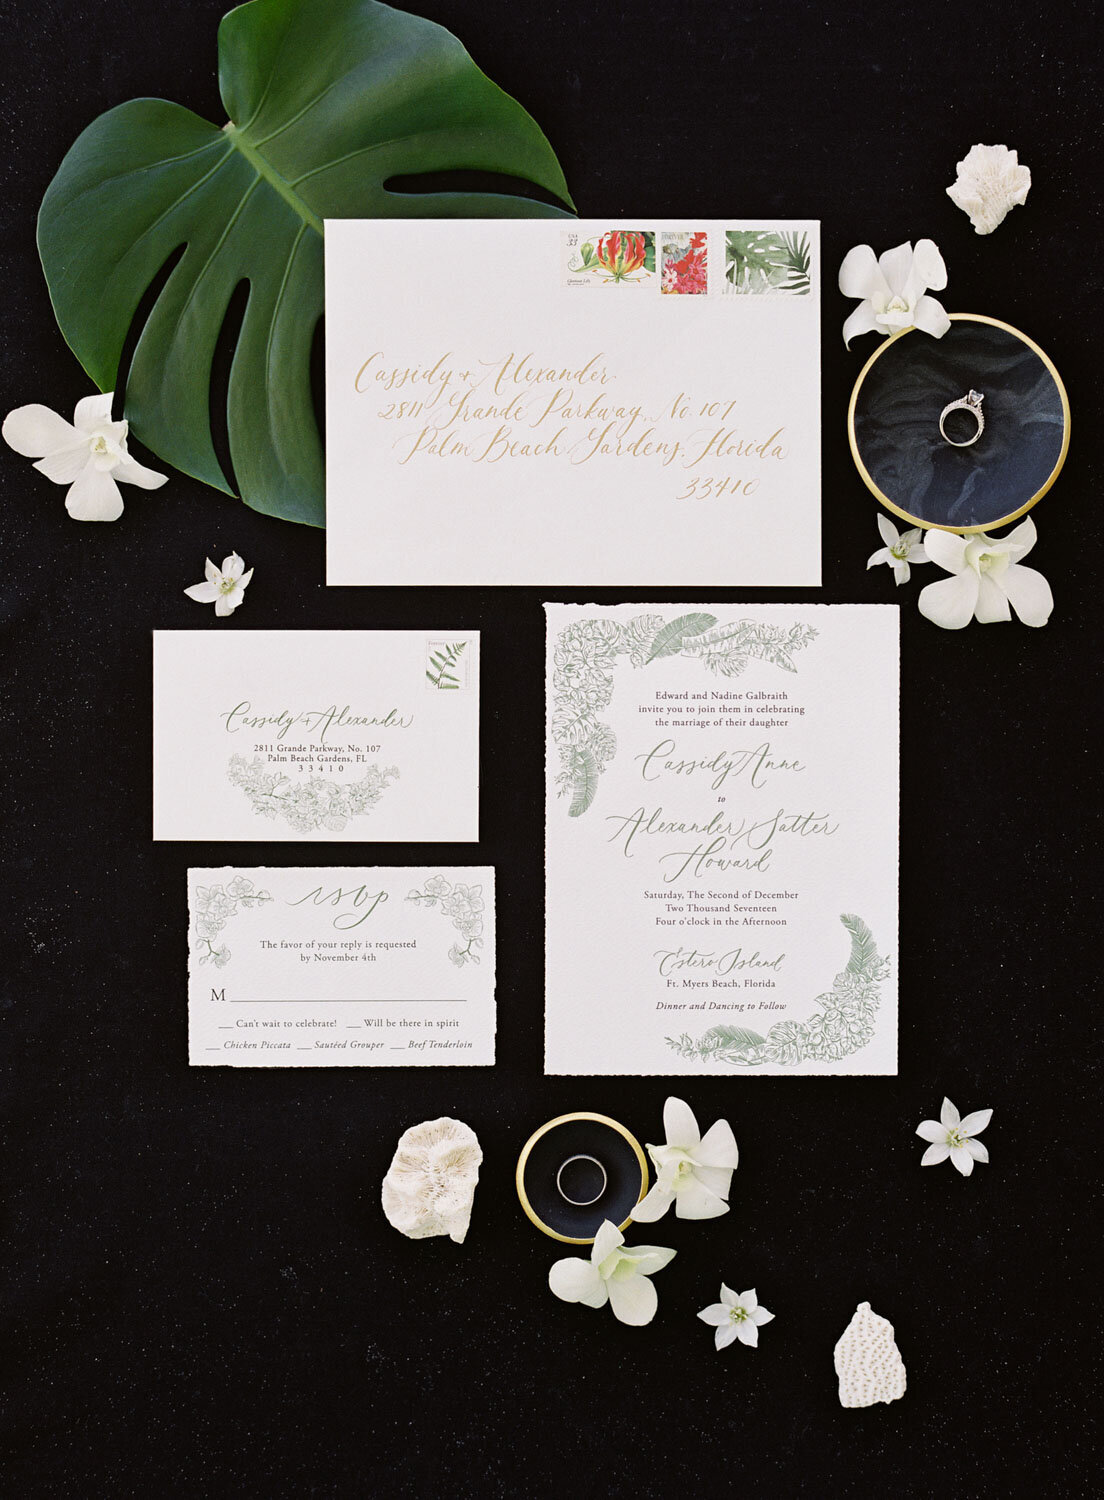 elegant-bohemian-tropical-december-destination-wedding-melanie-gabrielle-photography-martha-stewart-submission-001